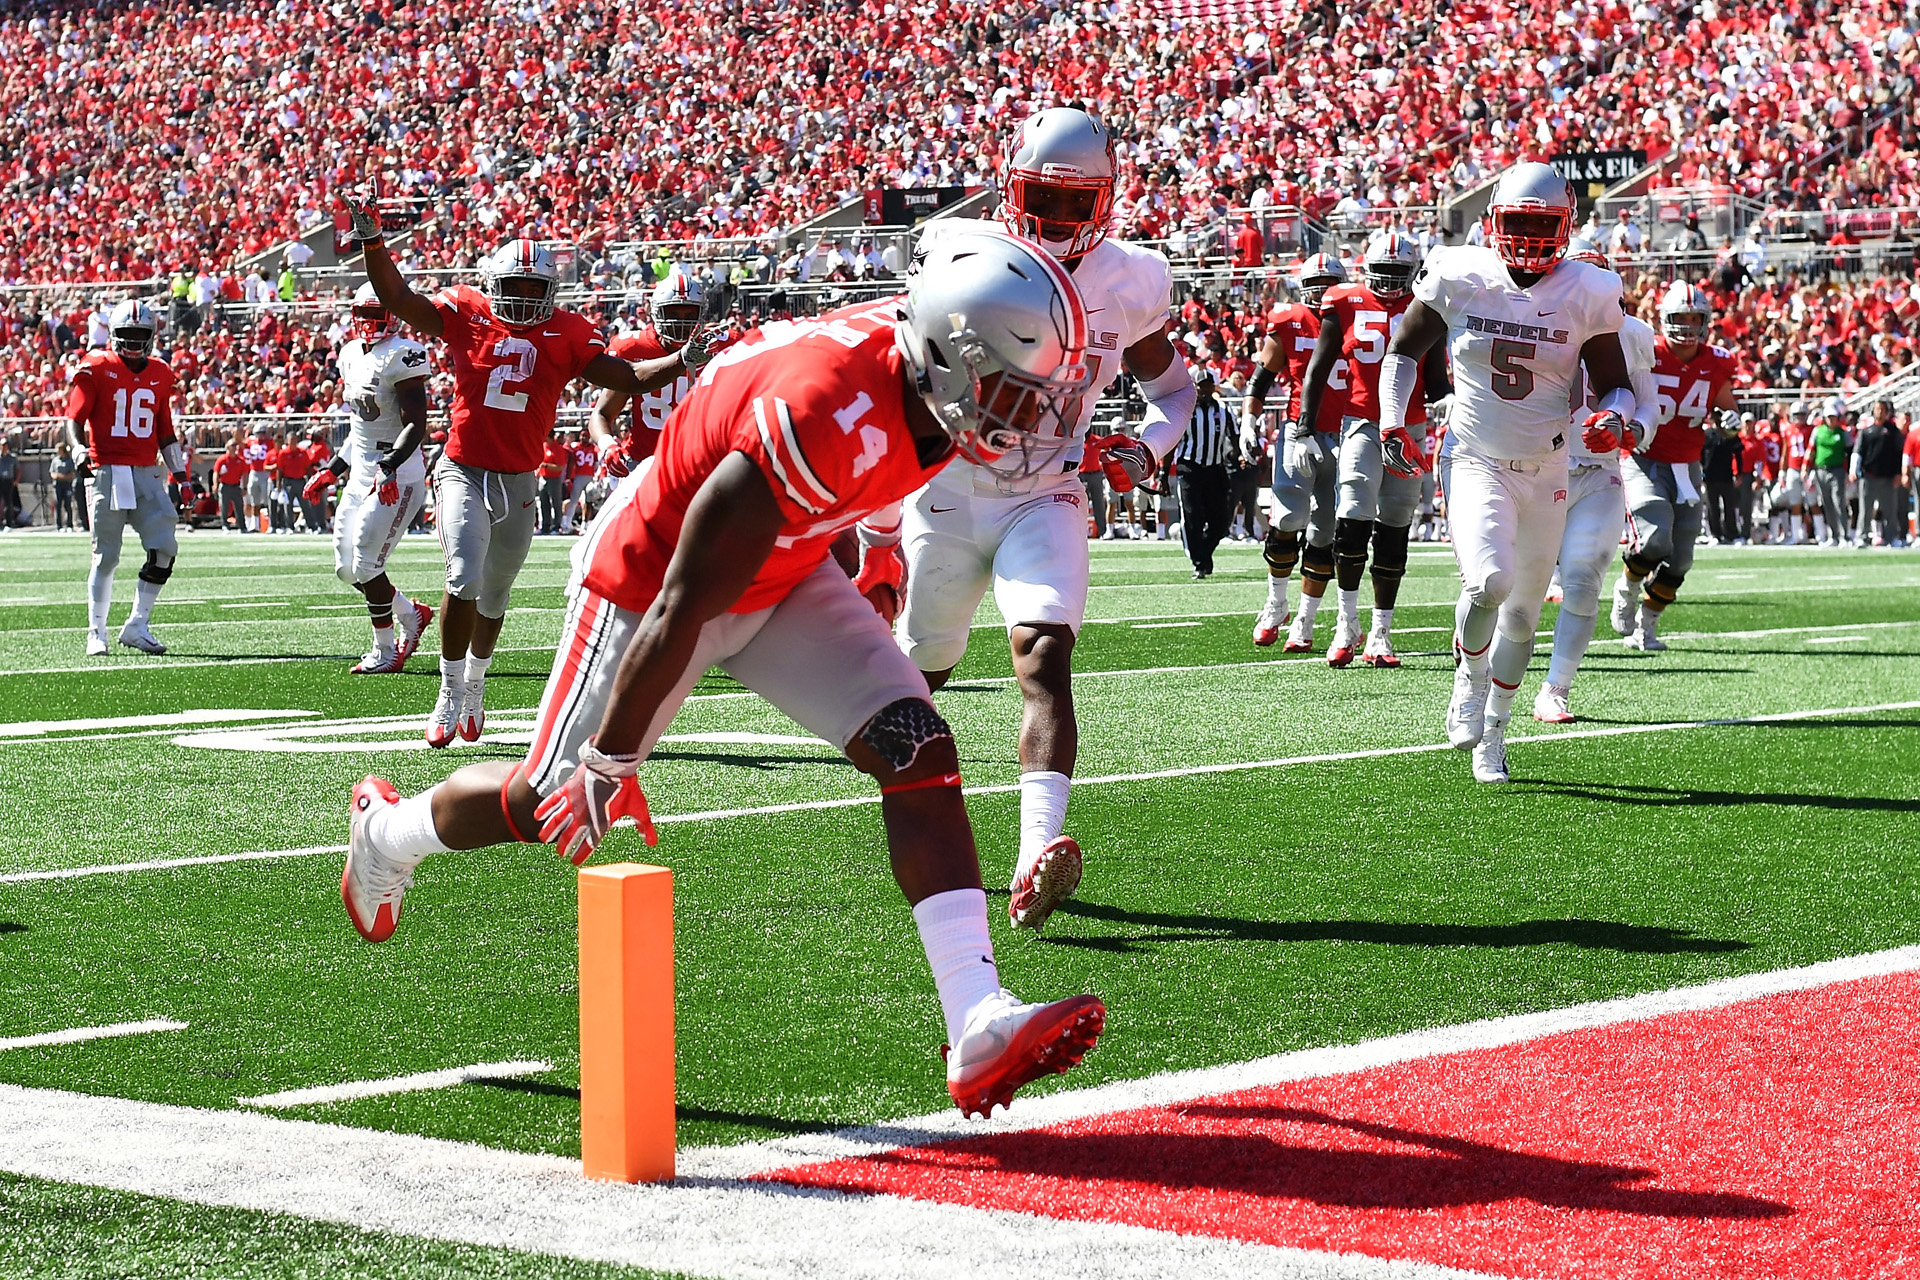 Ohio State drops to No  11 in AP poll